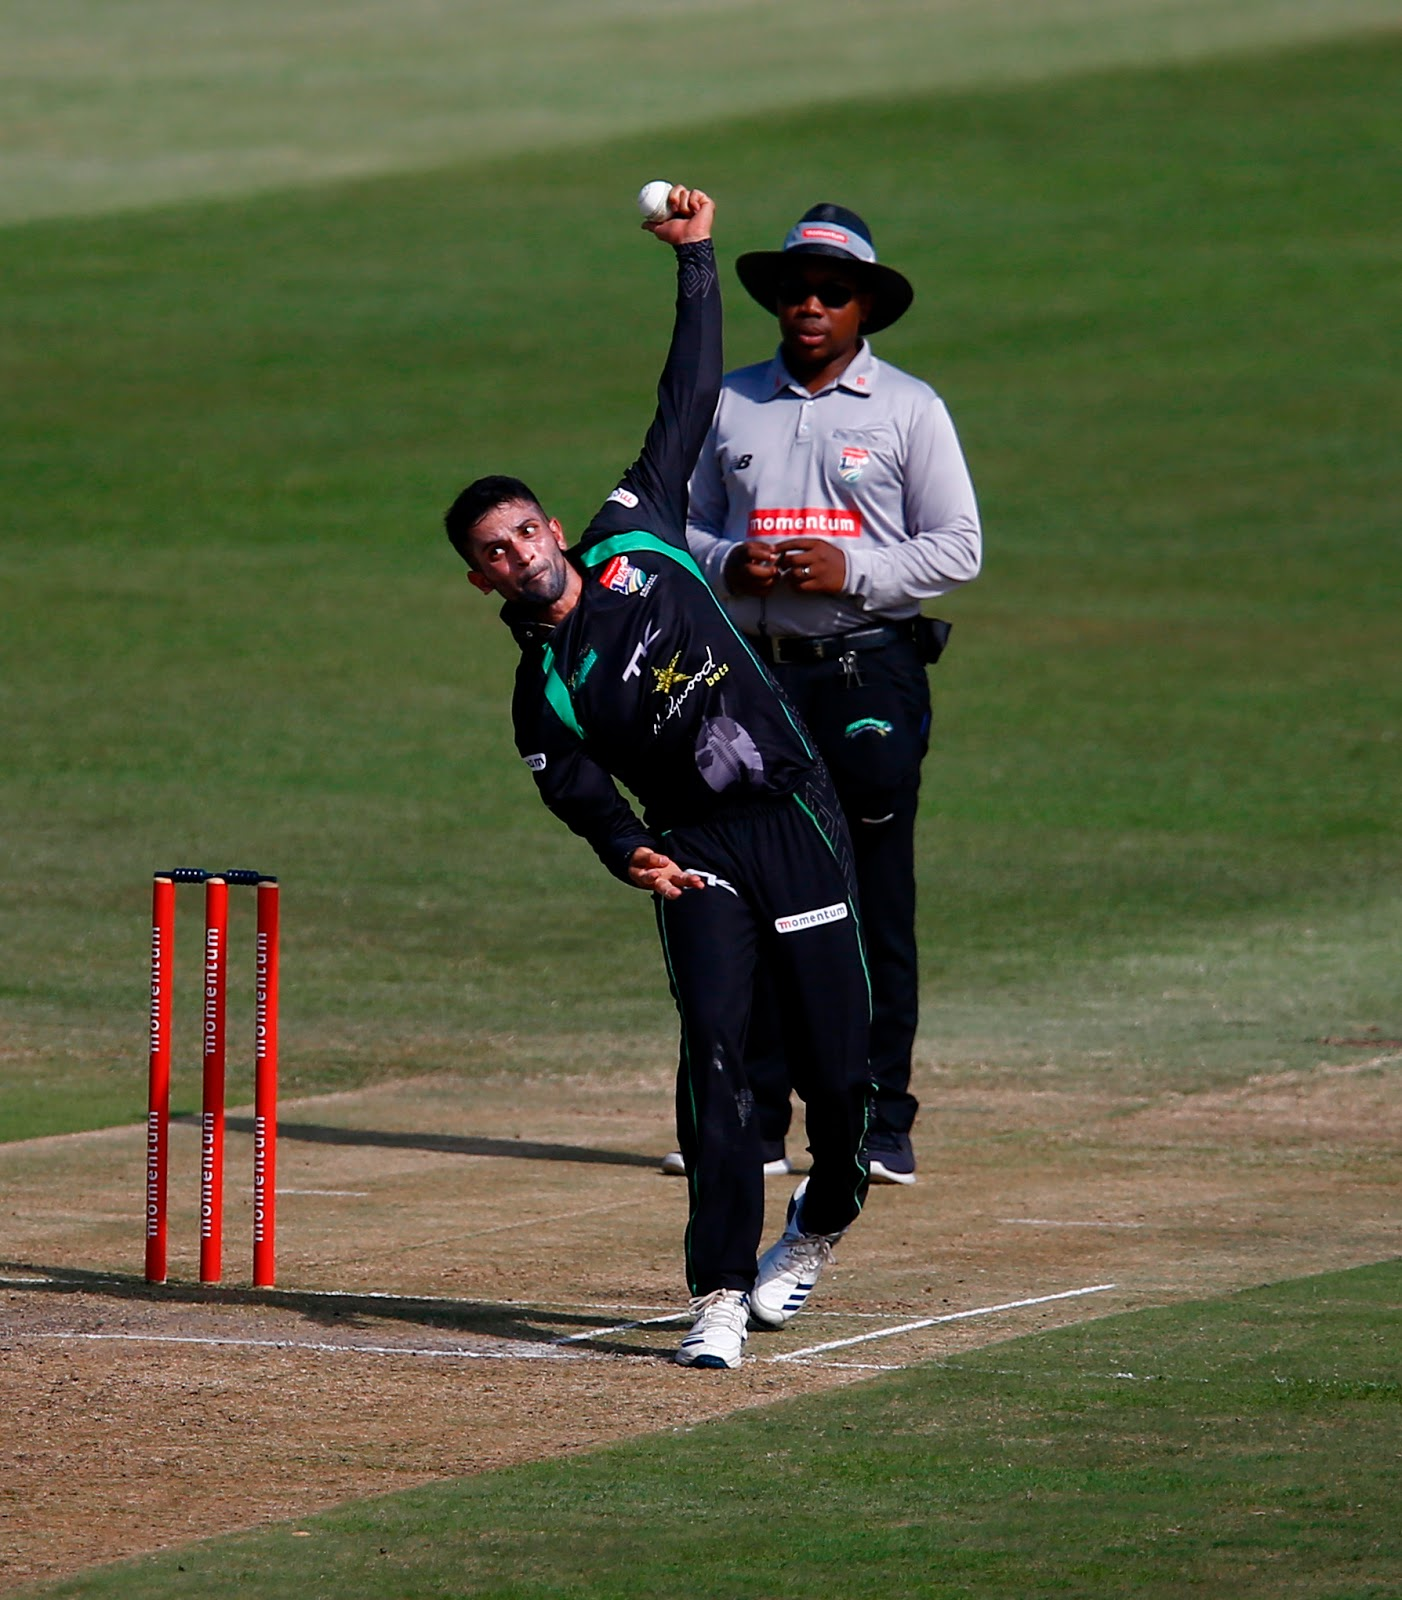 Keshav Maharaj bowling for the Hollywoodbets Dolphins - Copyright Steve Haag